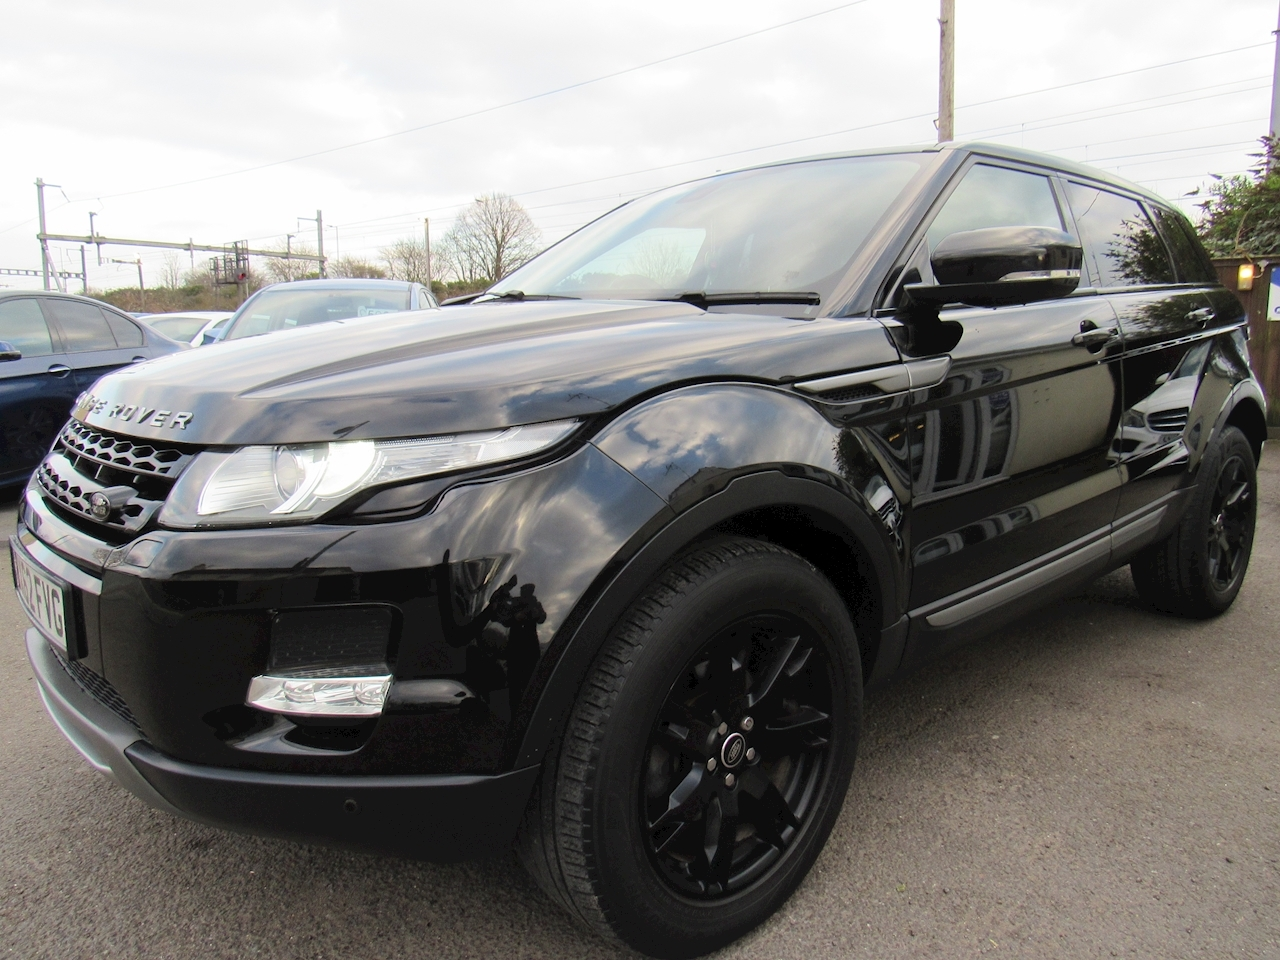 Land Rover Range Rover Evoque Sd4 Pure Tech Estate 2.2 Manual Diesel